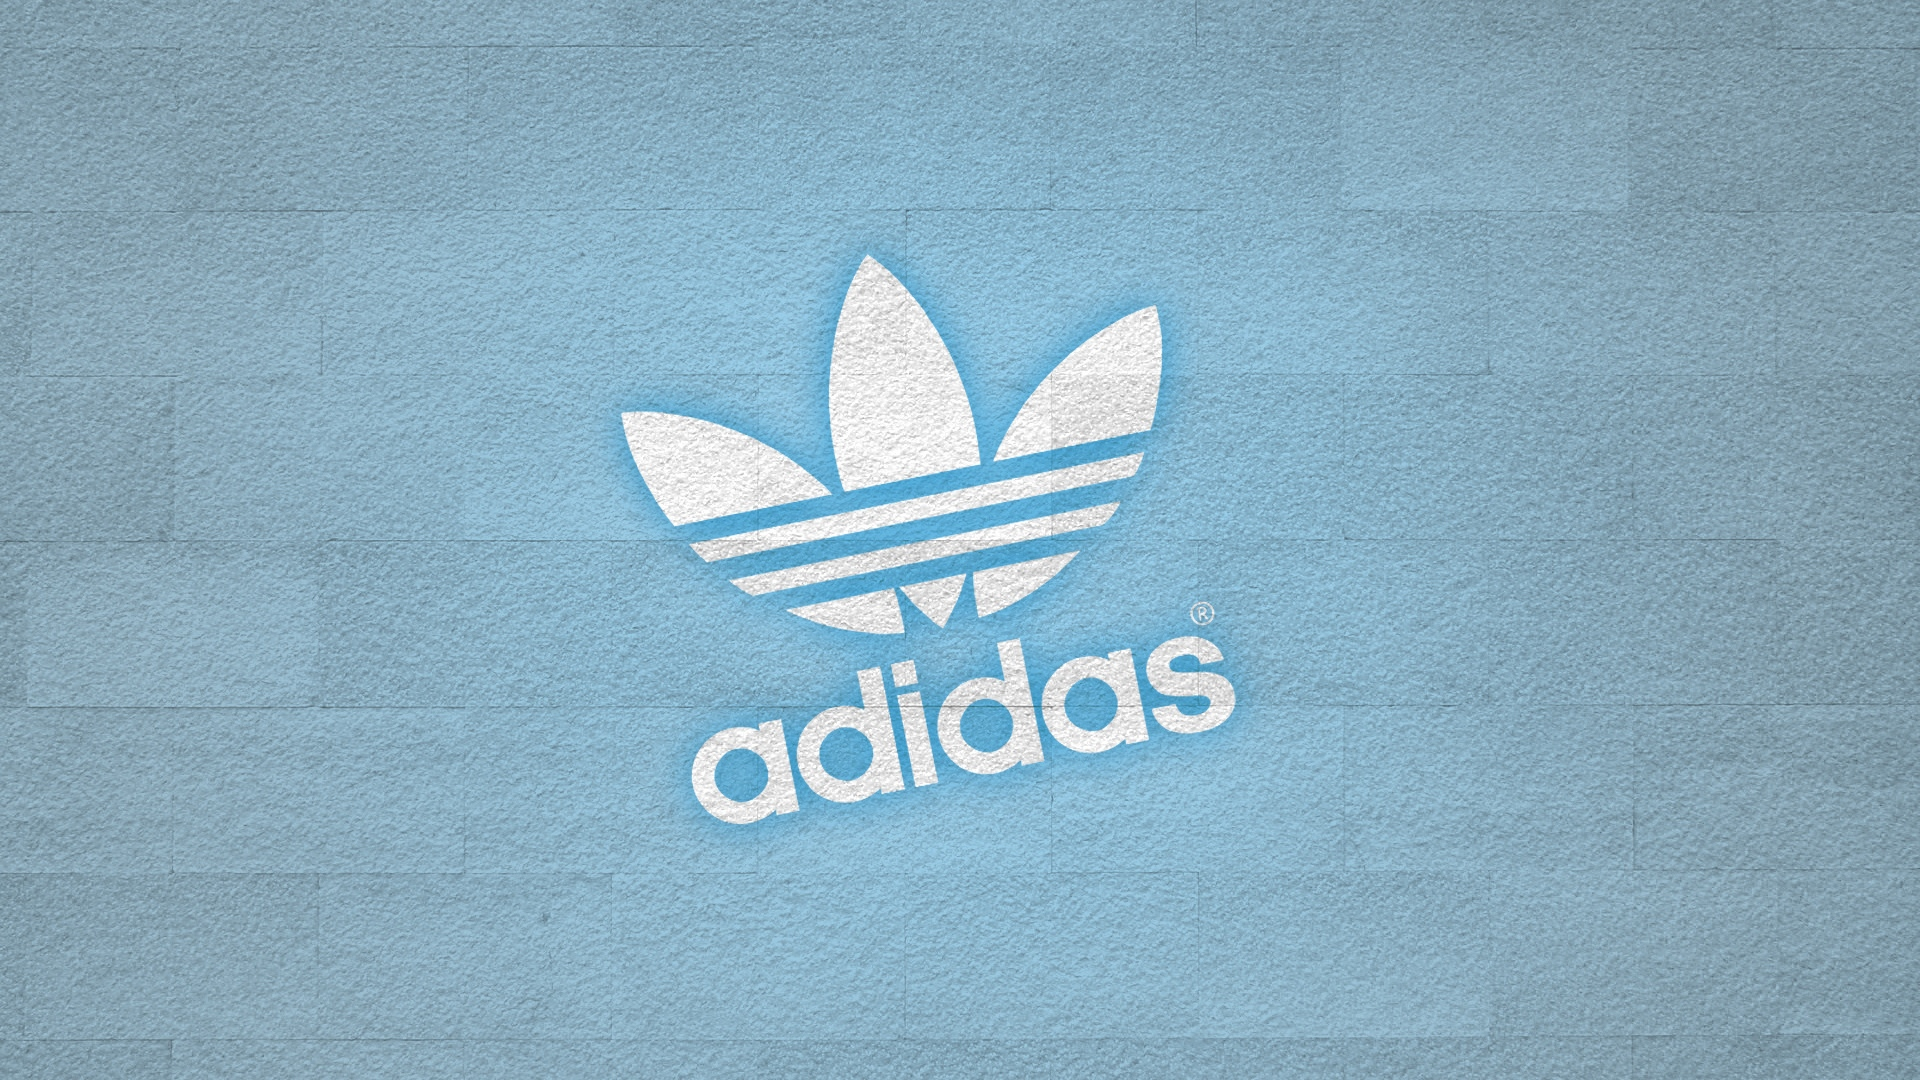 Adidas Wallpaper Brands Other 72 Wallpapers HD Wallpapers 1920x1080